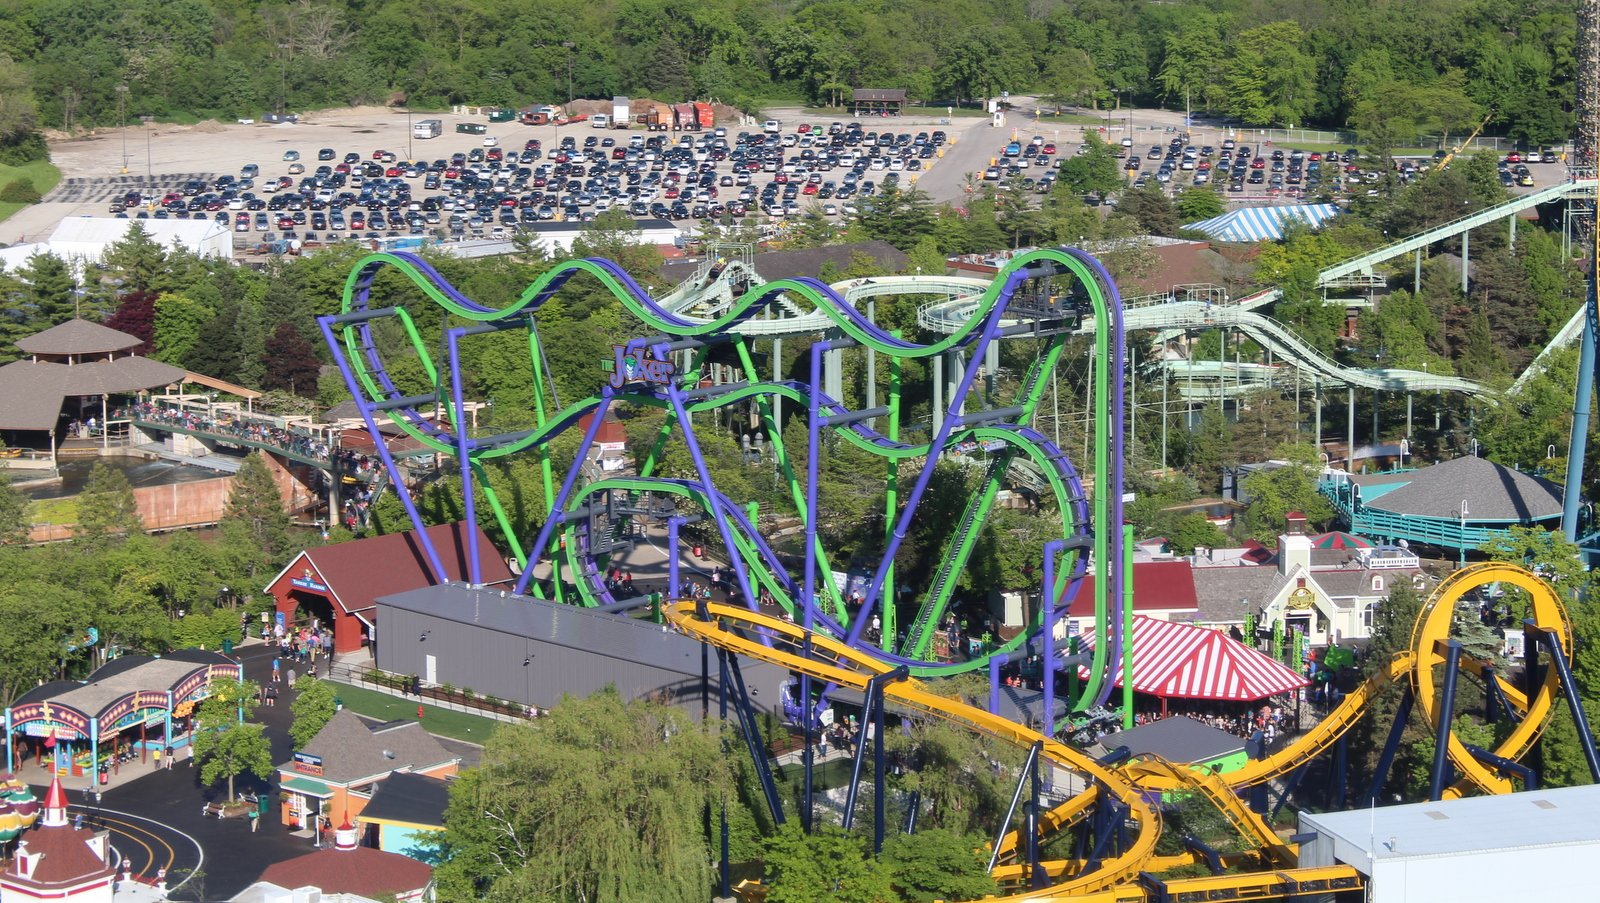 Review Joker At Six Flags Great America Coaster101 Roller Coaster Here Is A Wonderful Diagram Which Shows What Happened There Nothing Like It Anywhere Near Americas Turf And For That Reason I Have No Doubt This Ride Will Be Massive Success The Park